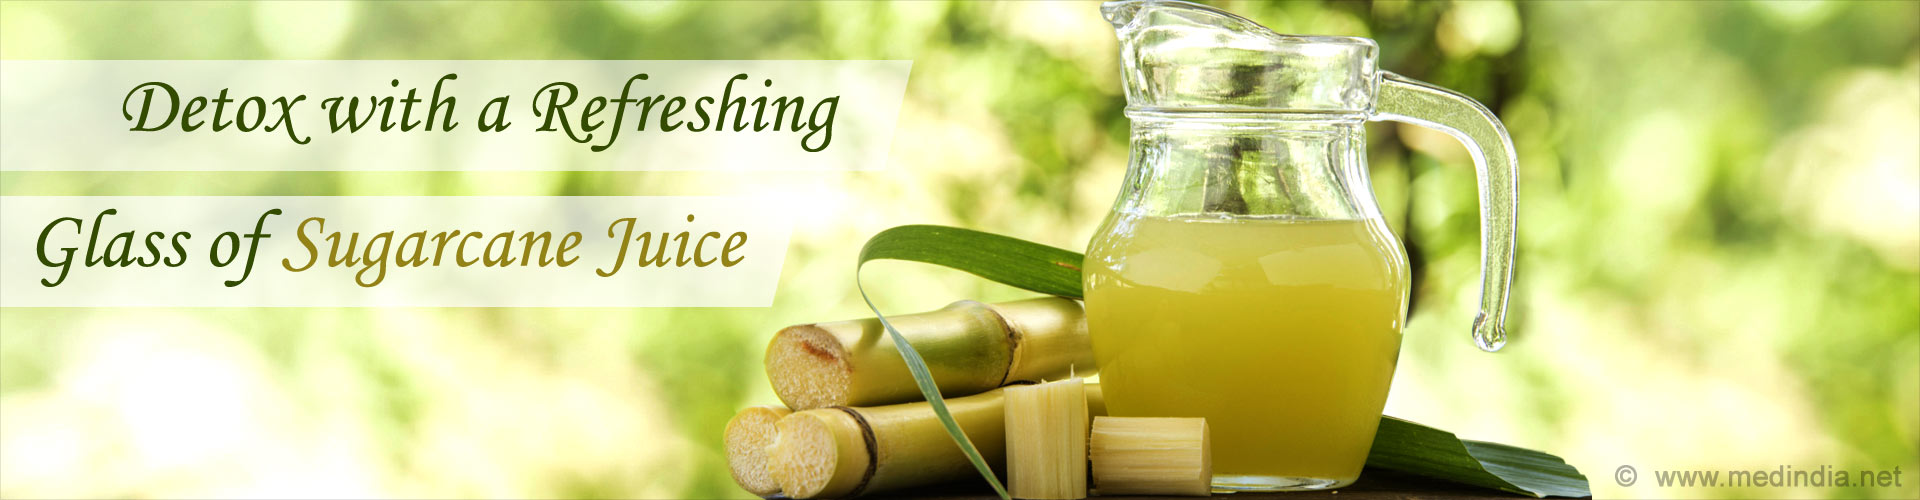 Detox with a Refreshing Glass of Sugarcane Juice